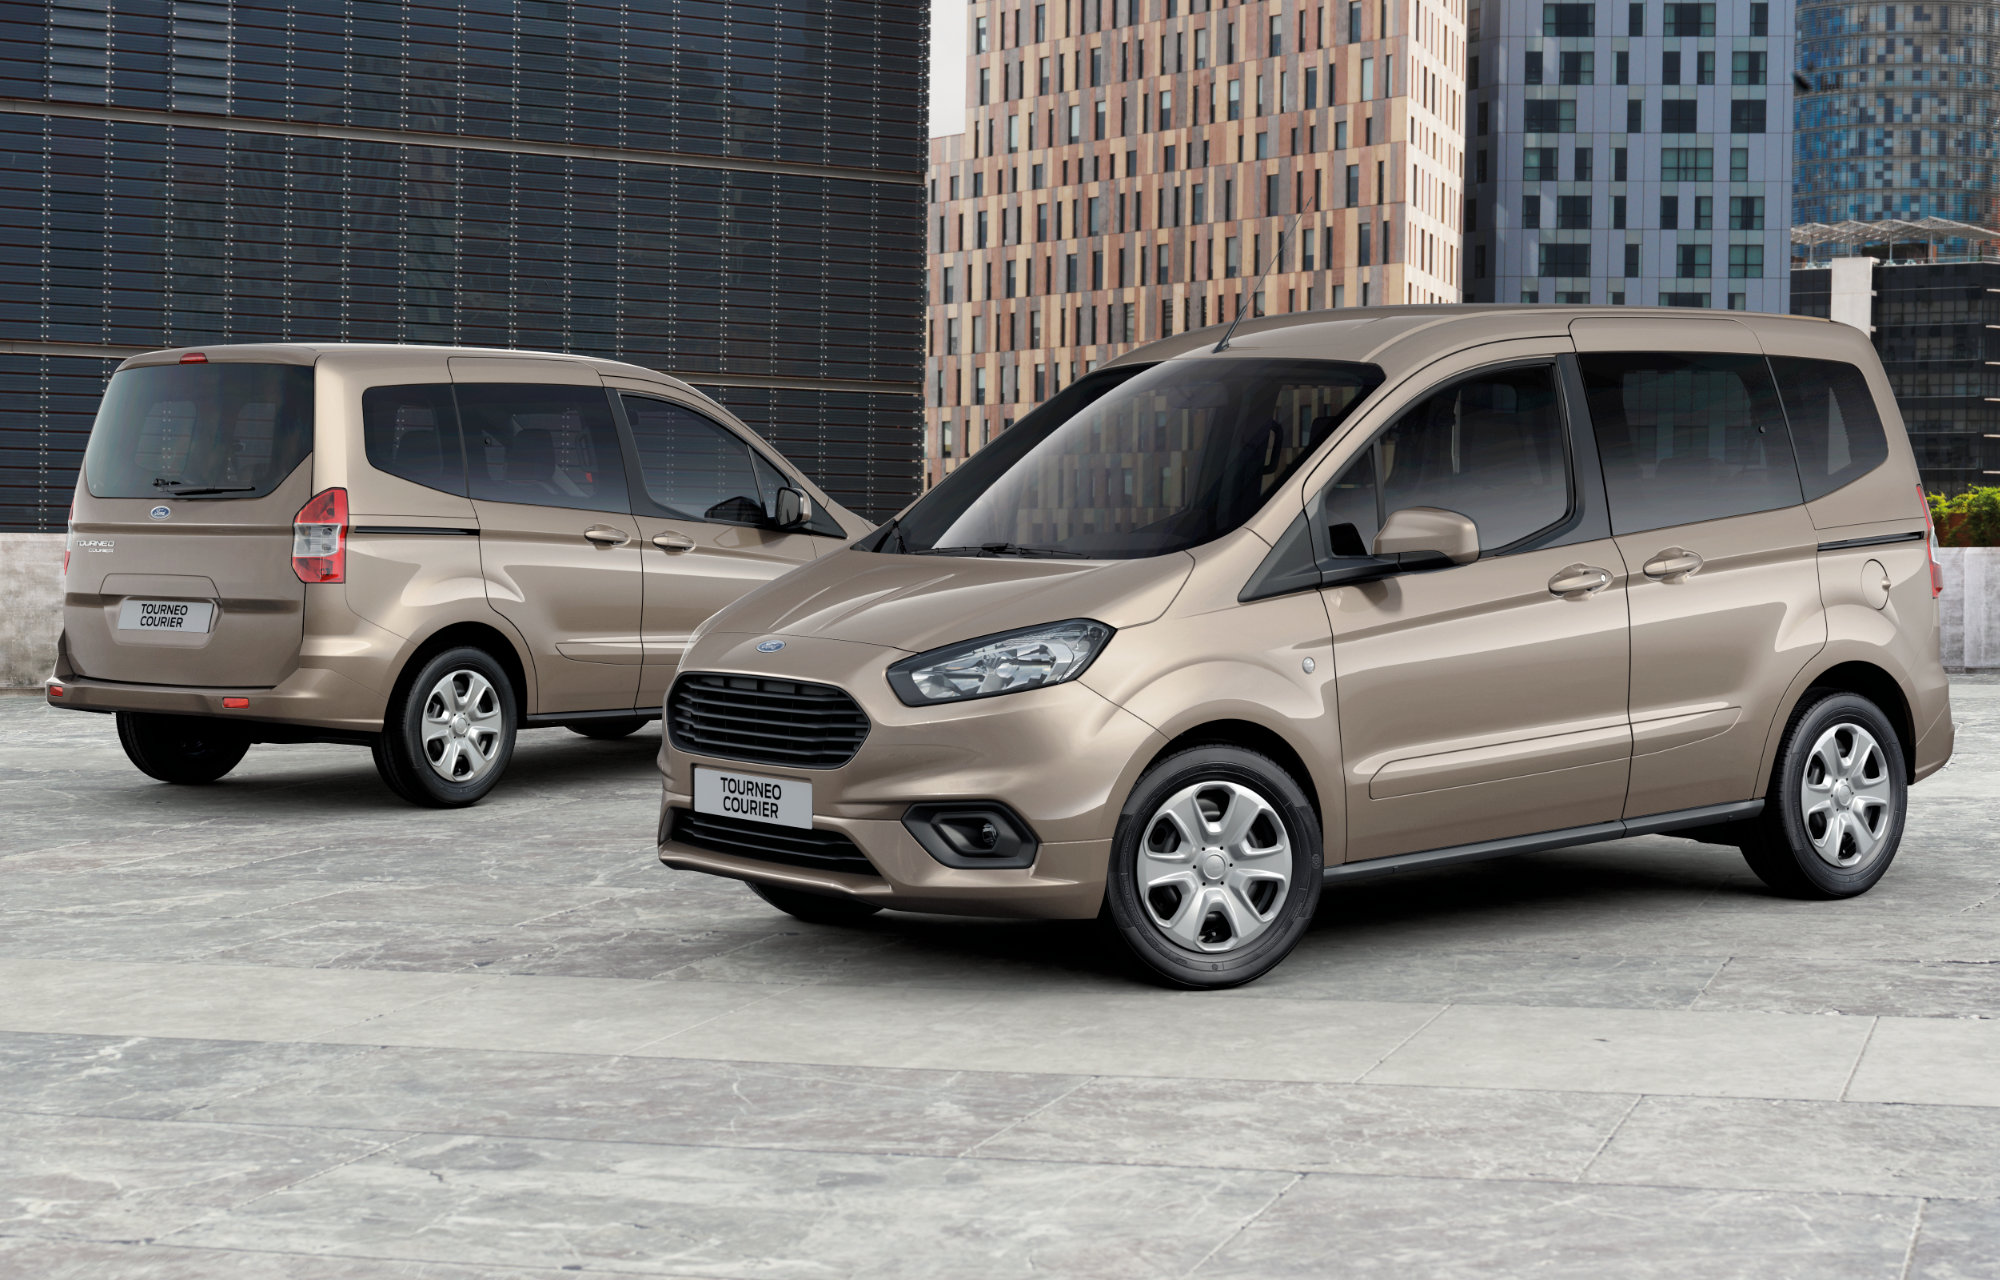 Ford Tourneo Courier Trend, 1.0l, 100 PS/170 kW